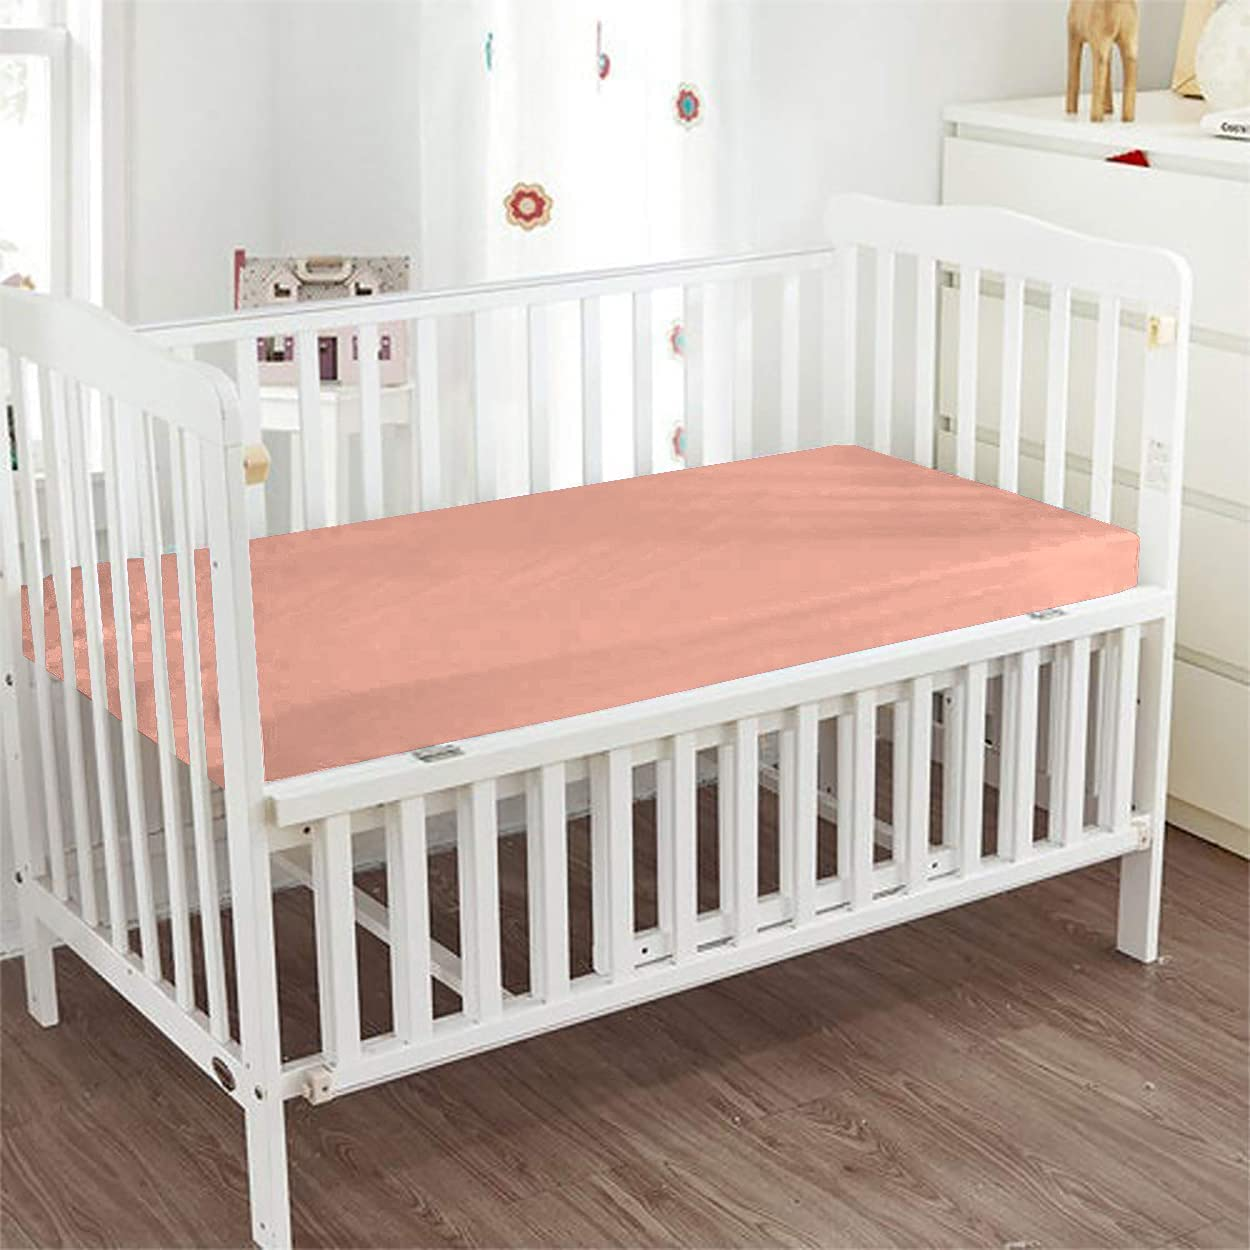 Silver Cotton Many popular brands - Fitted Crib Sheet Color Egyptian Solid Co Max 51% OFF 100%